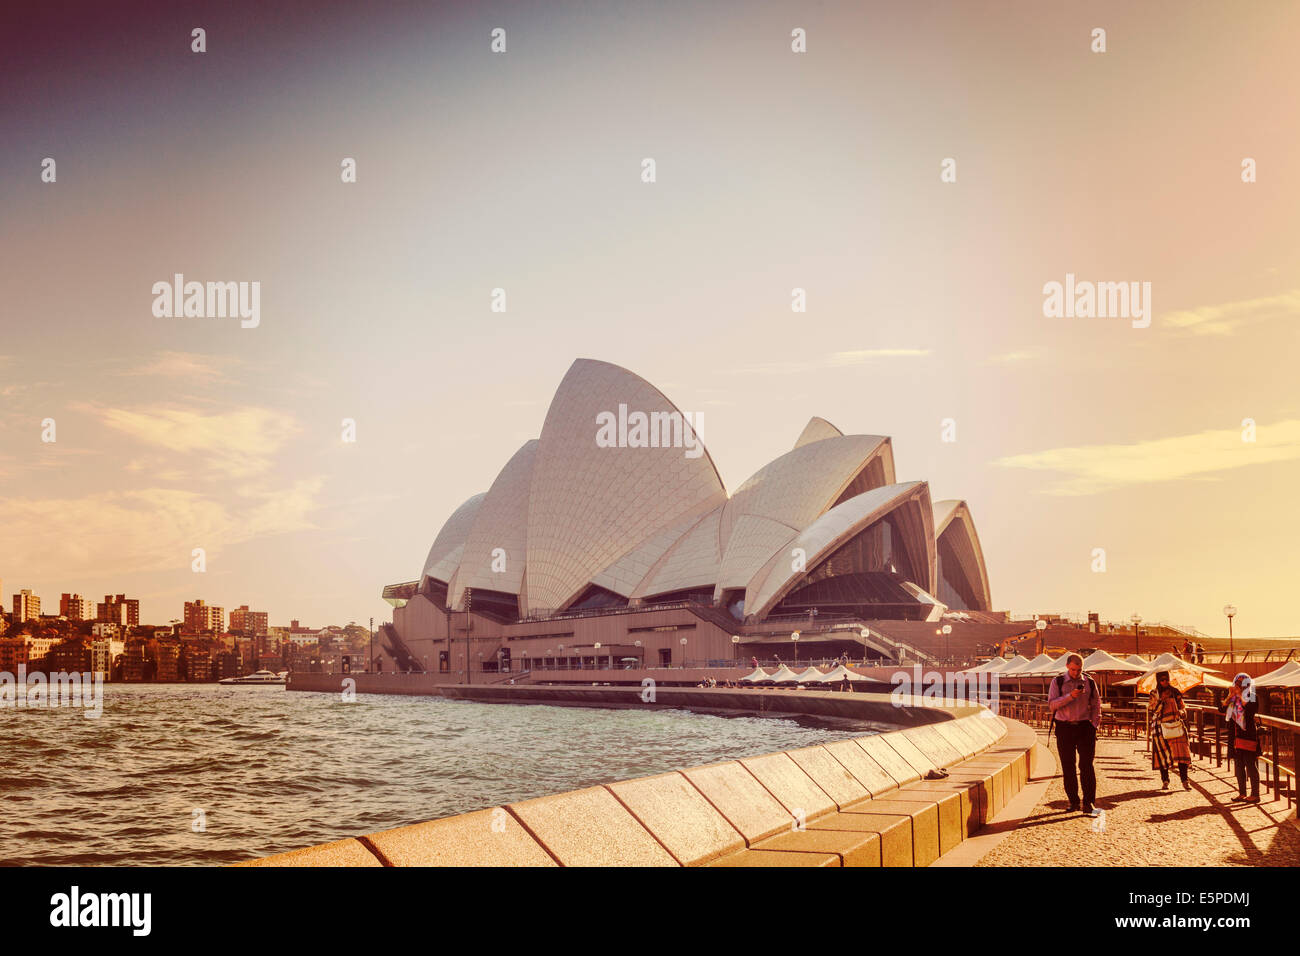 Sydney Opera House with Instagram filter - Stock Image